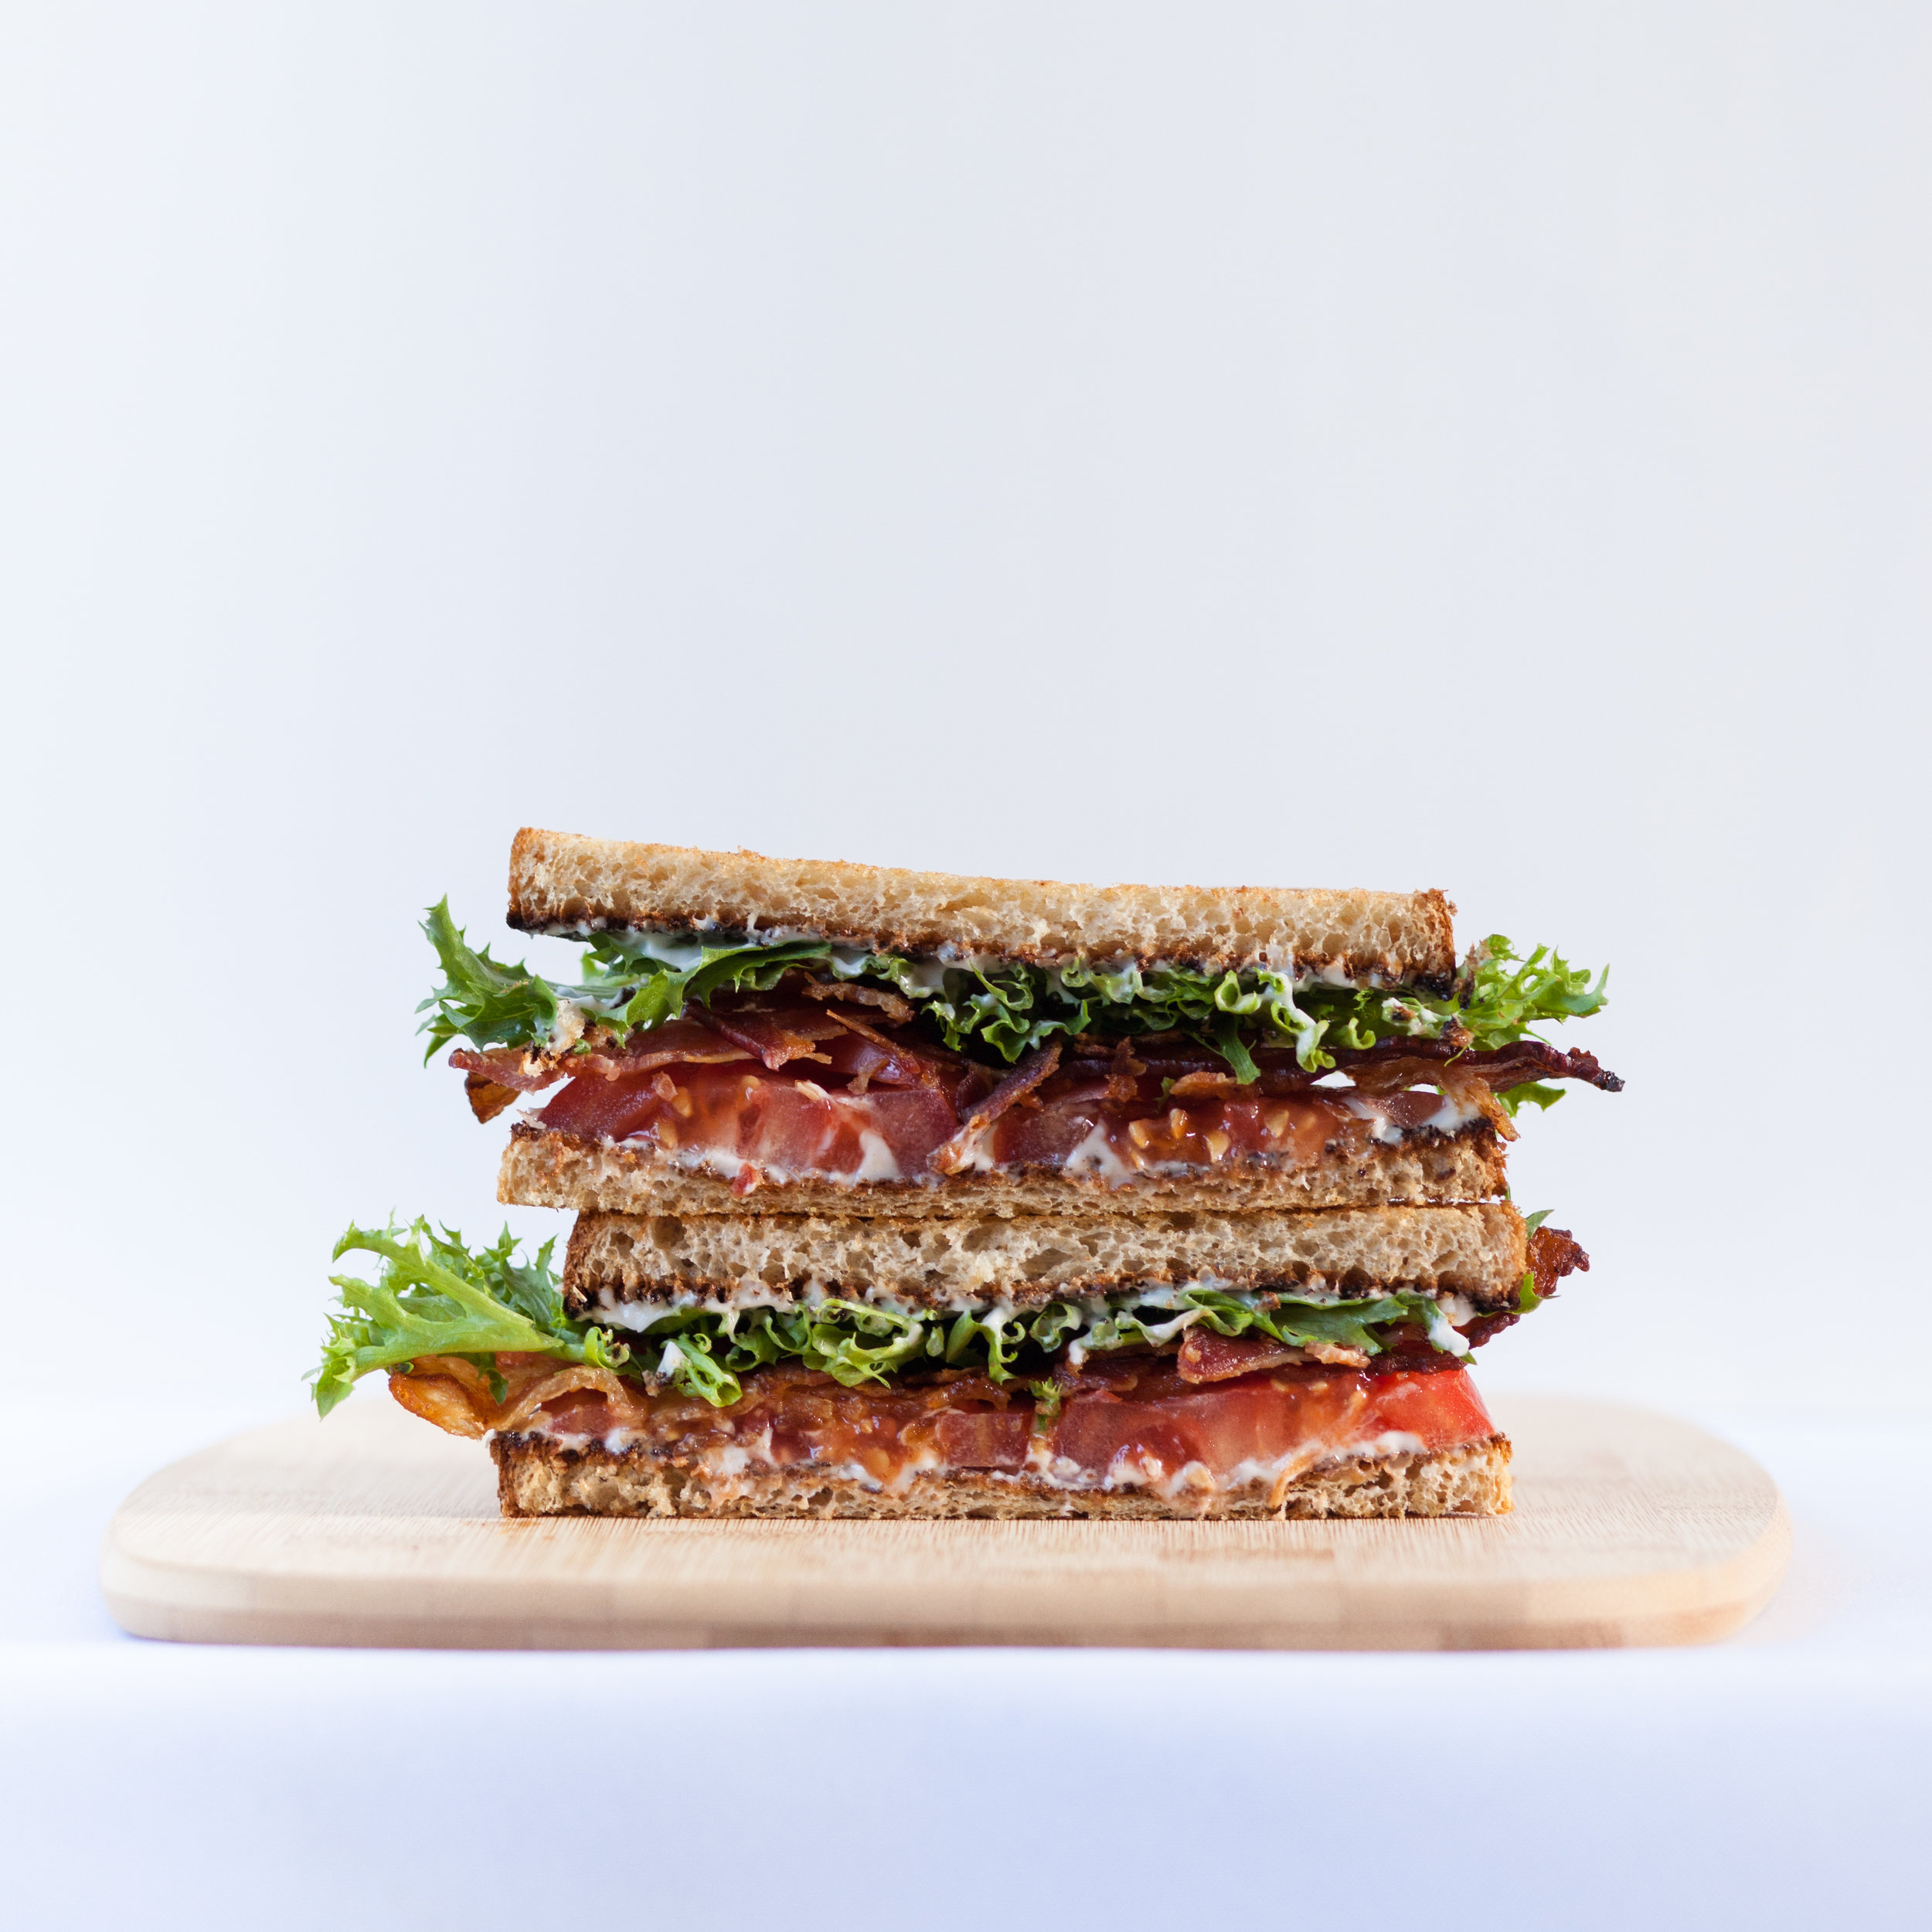 Stacked sandwich with bacon, lettuce, and tomato